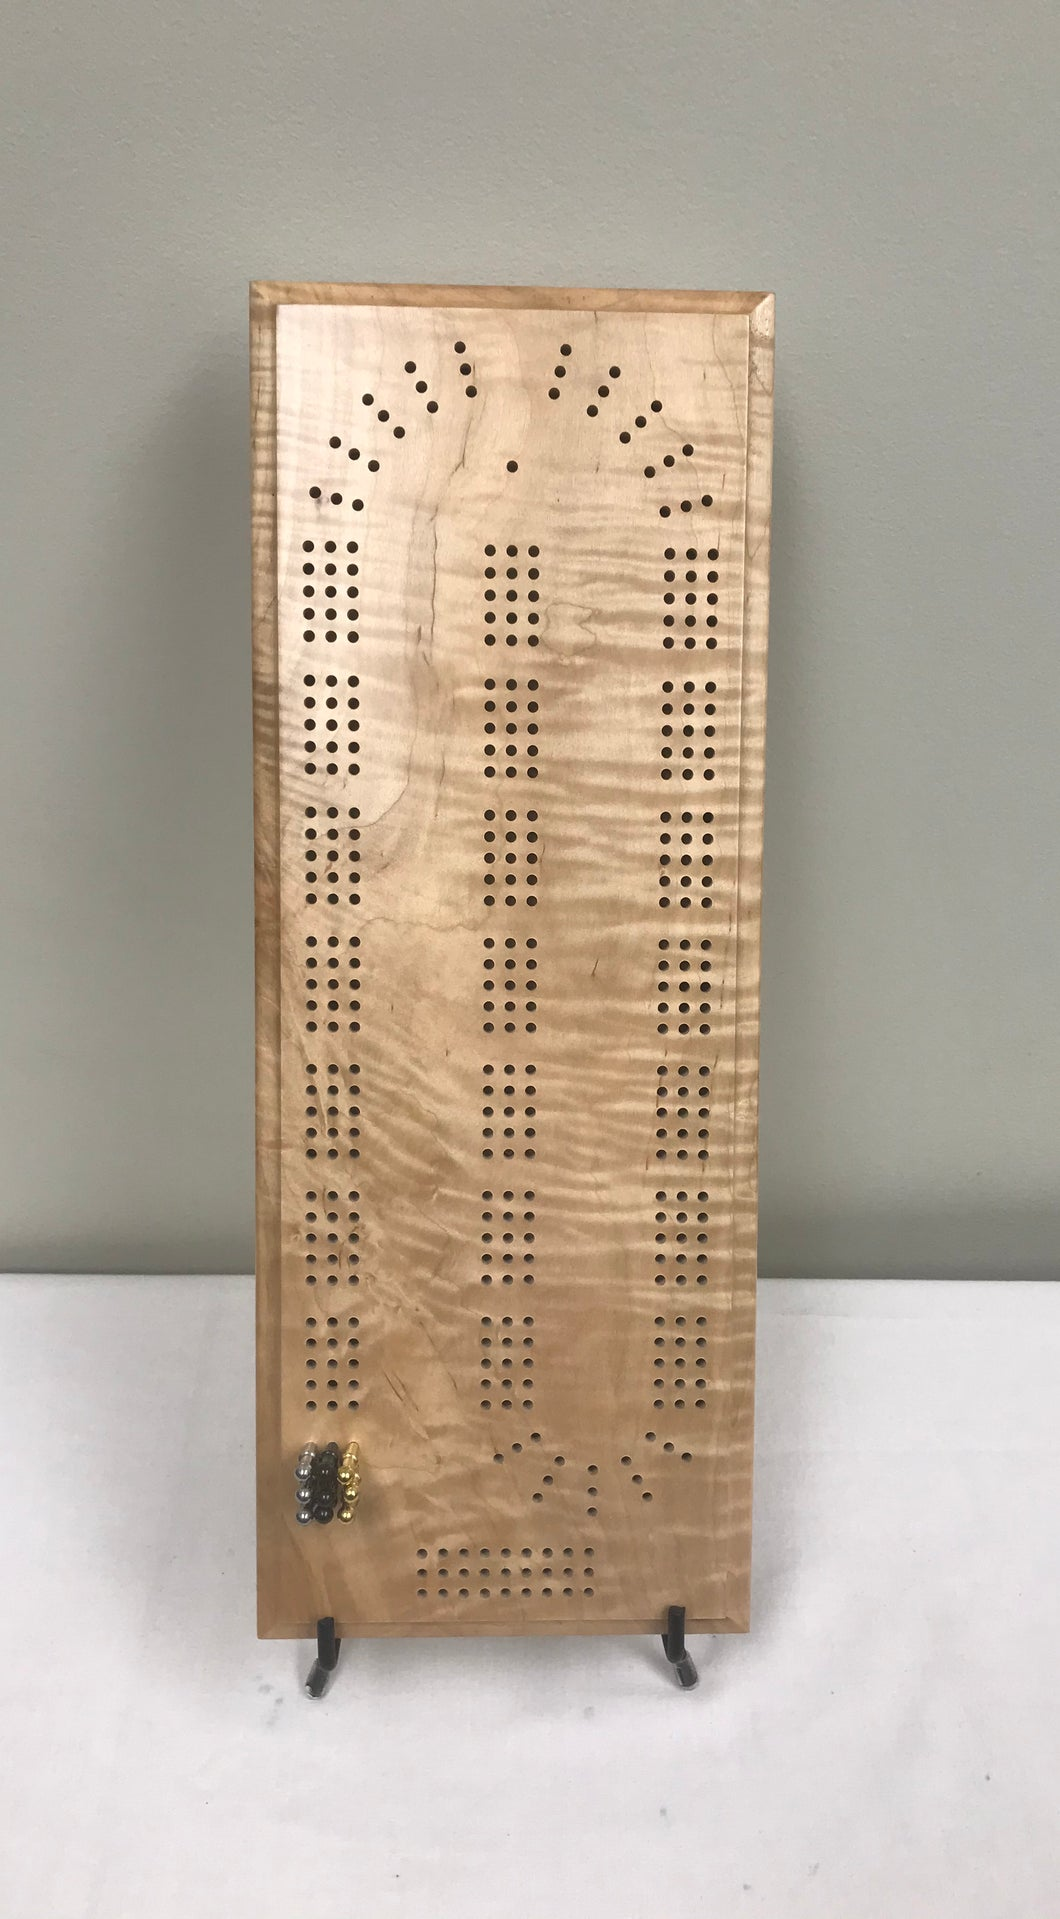 Cribbage Board - Curly Maple Cribbage Board